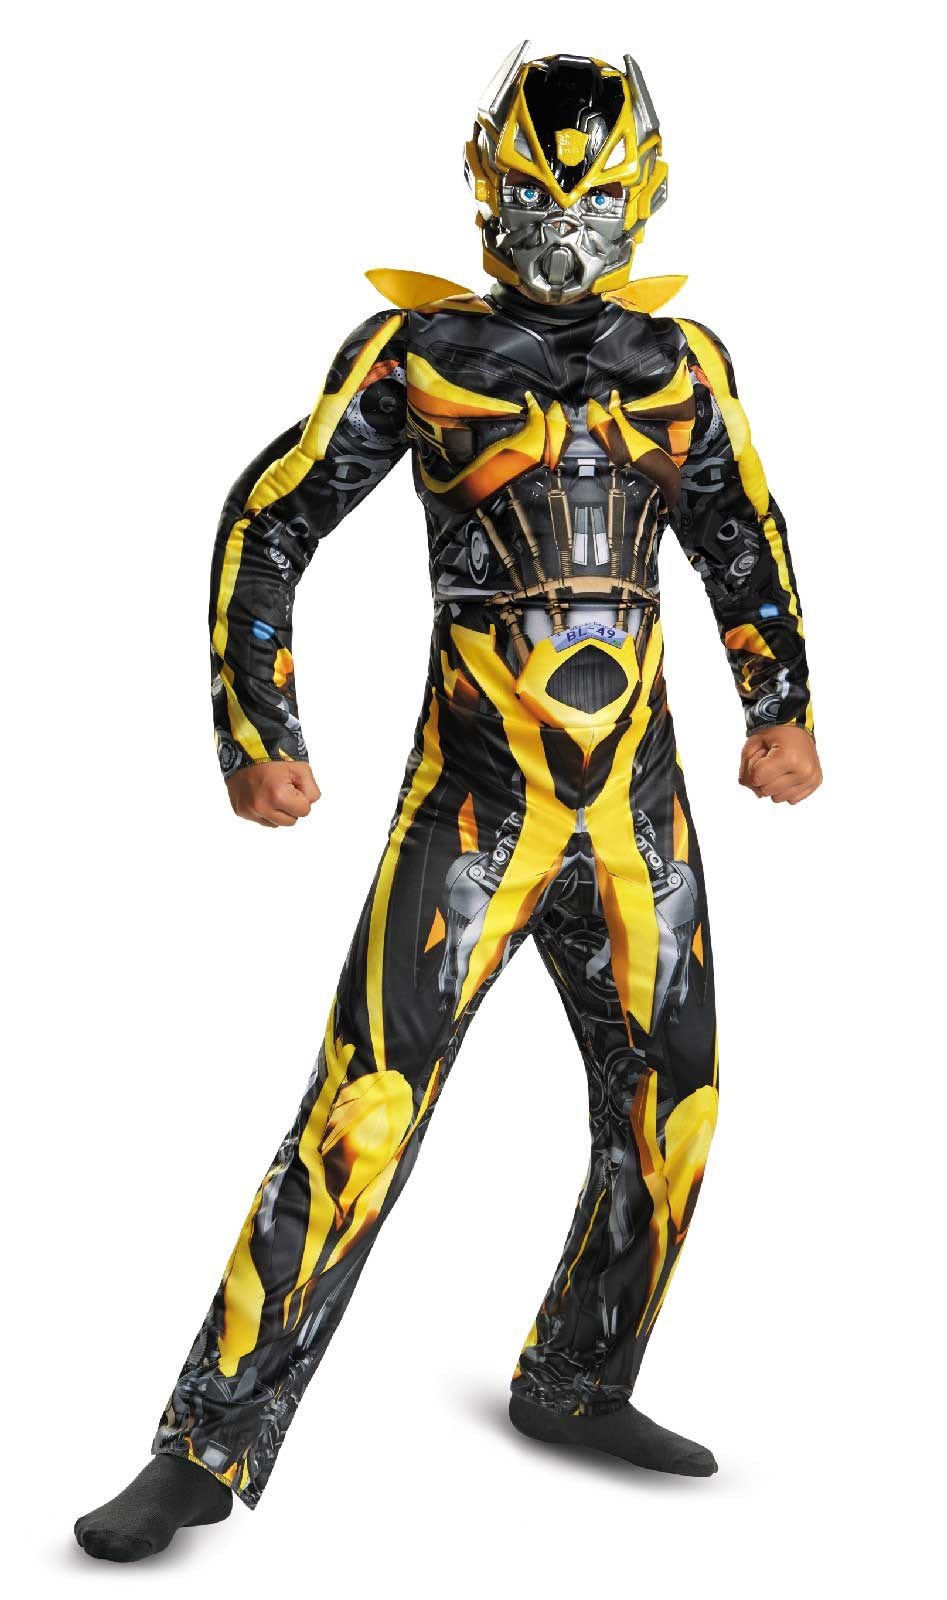 Transformers 4 Age of Extinction Bumblebee Muscle Child Costume Small (4-6)